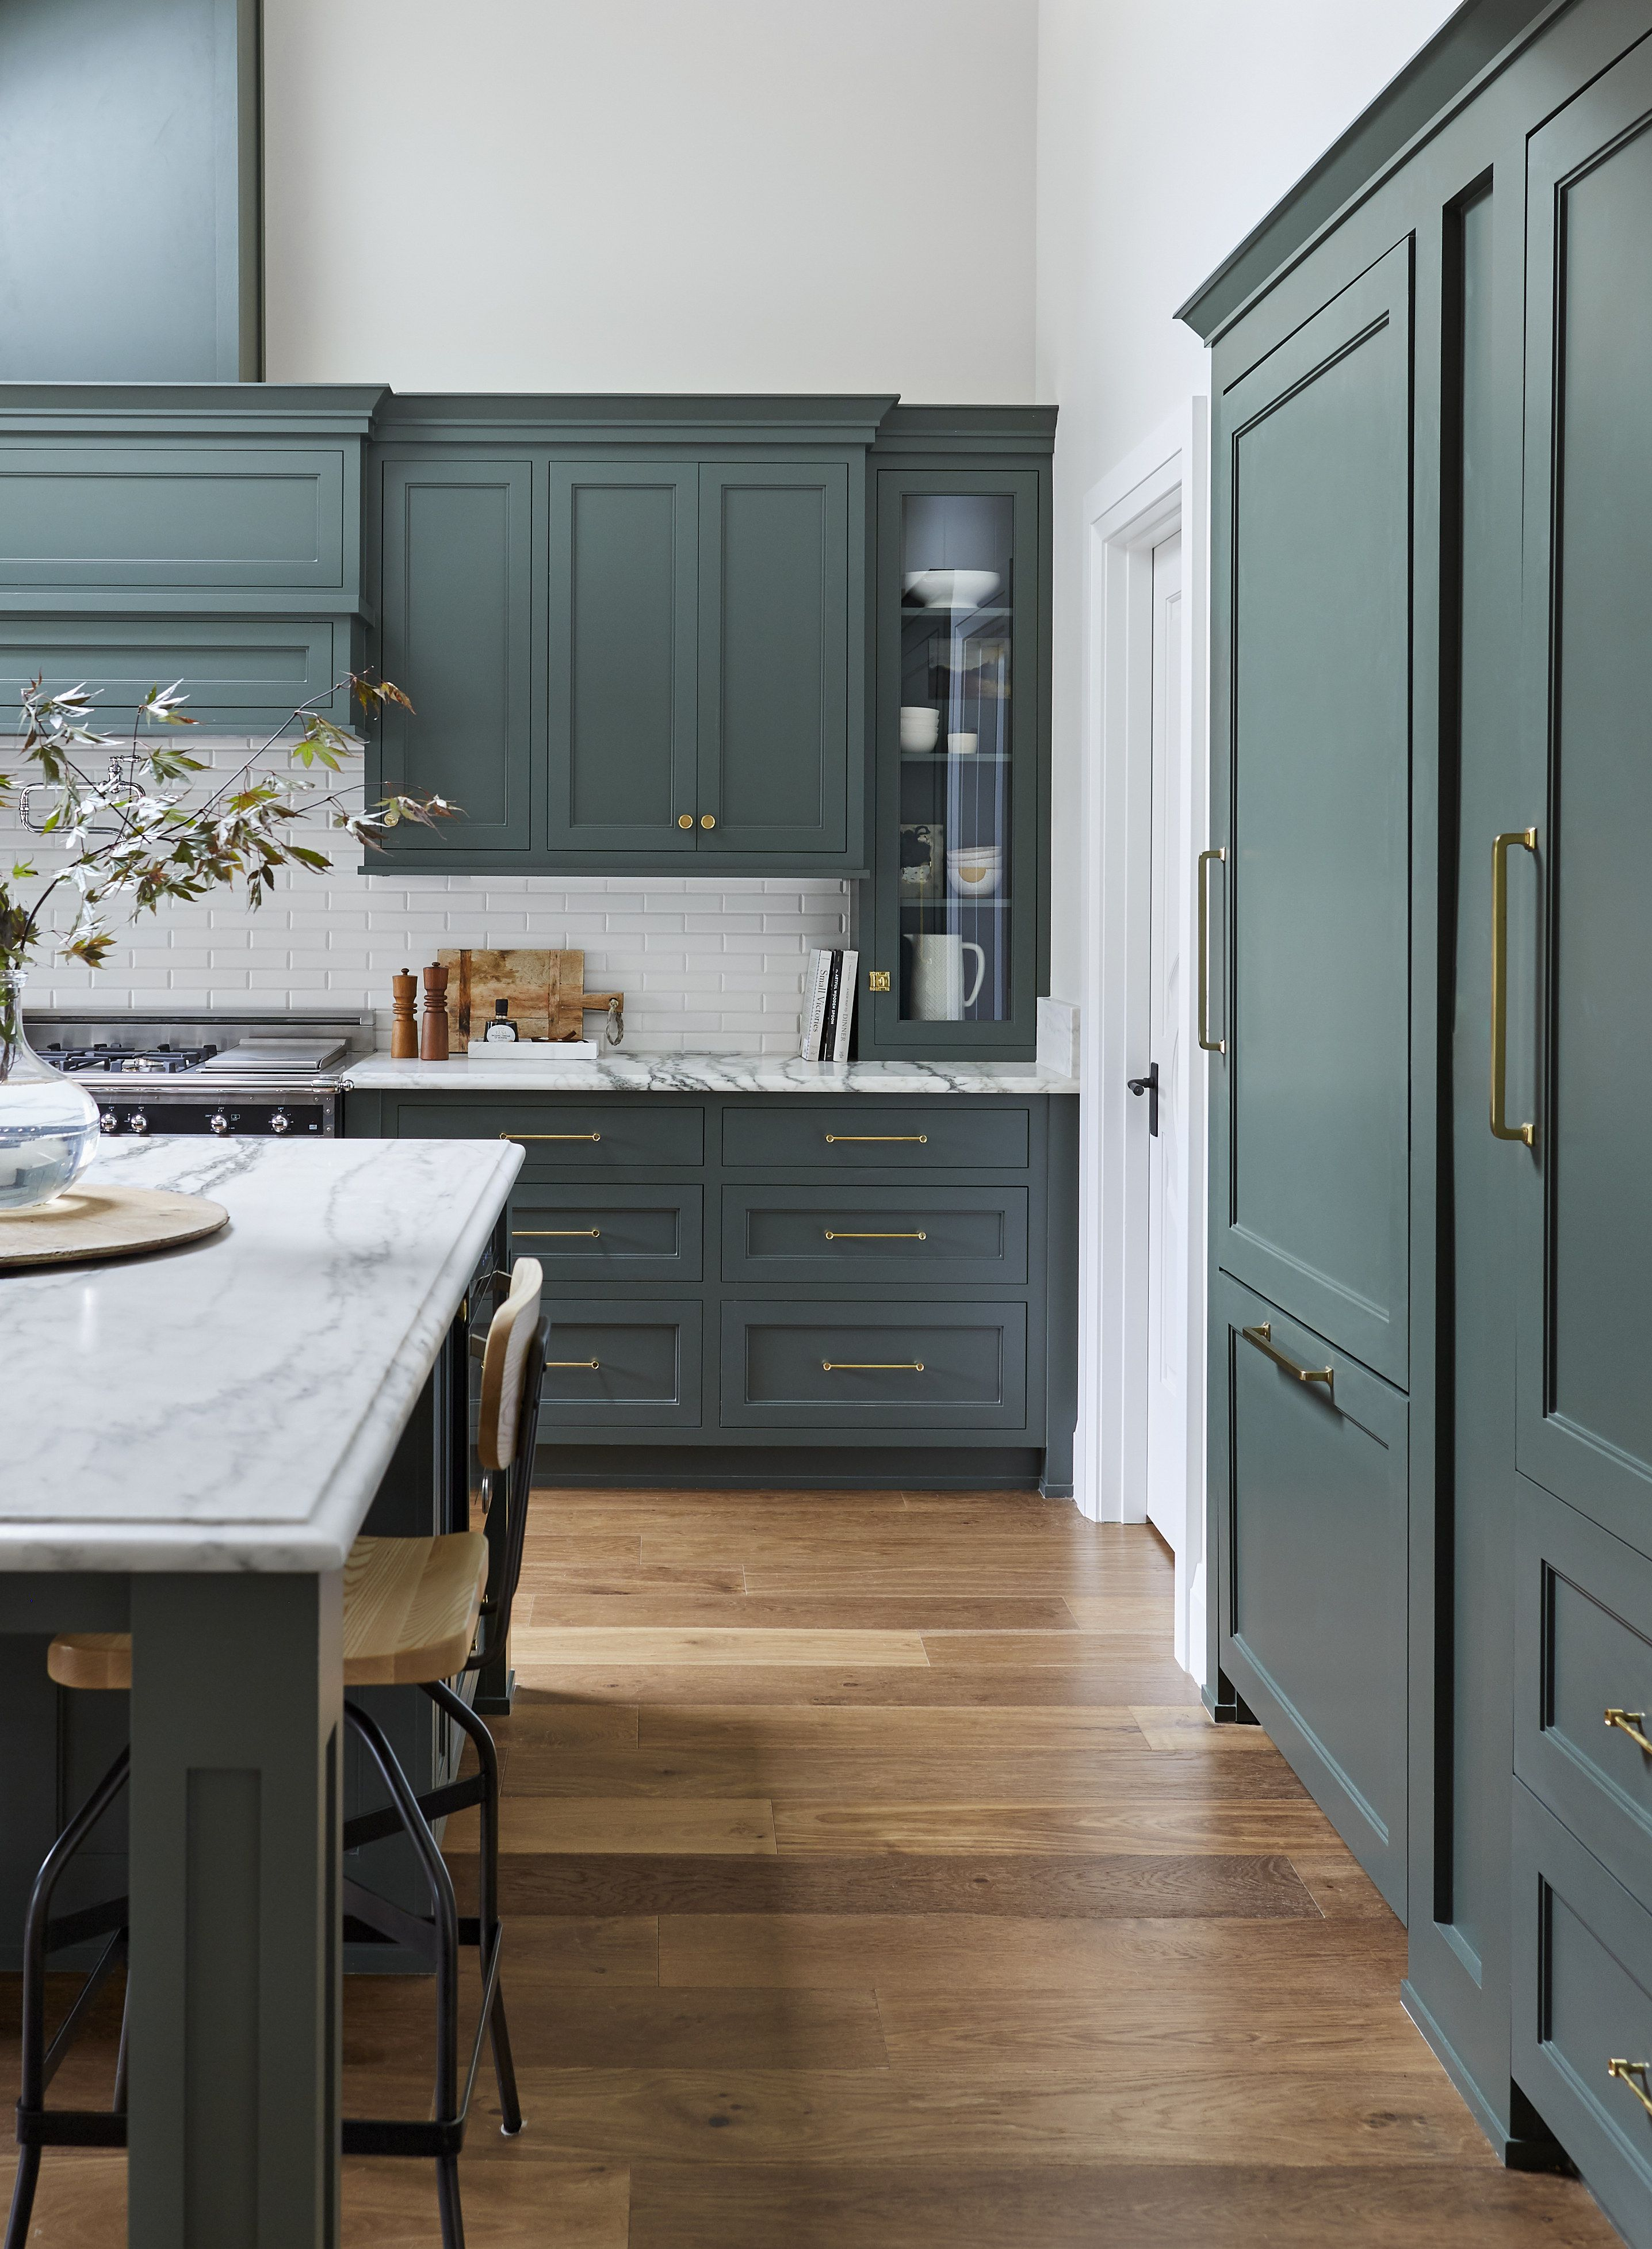 11 Green Kitchen Cabinet Paint Colors We Swear By Green Kitchen Cabinets Painted Kitchen Cabinets Colors Interior Design Kitchen